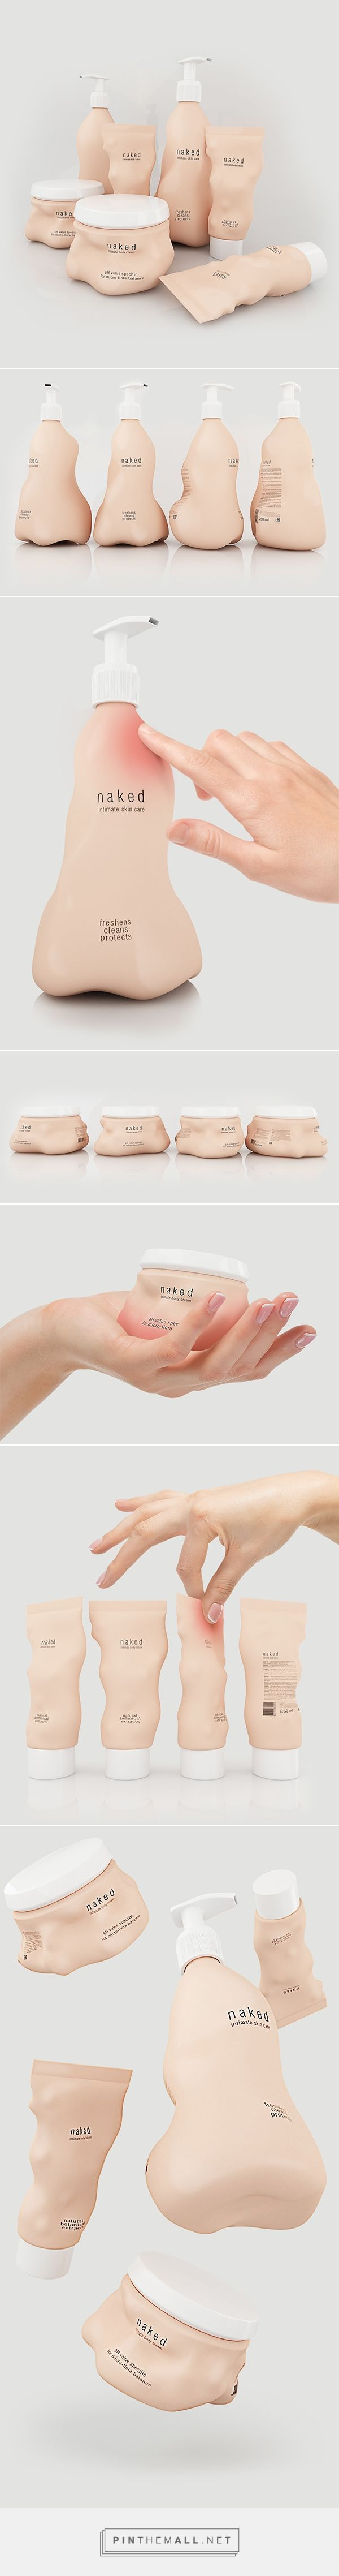 Intimate Care Products Package Concept designed by Stas Neretin